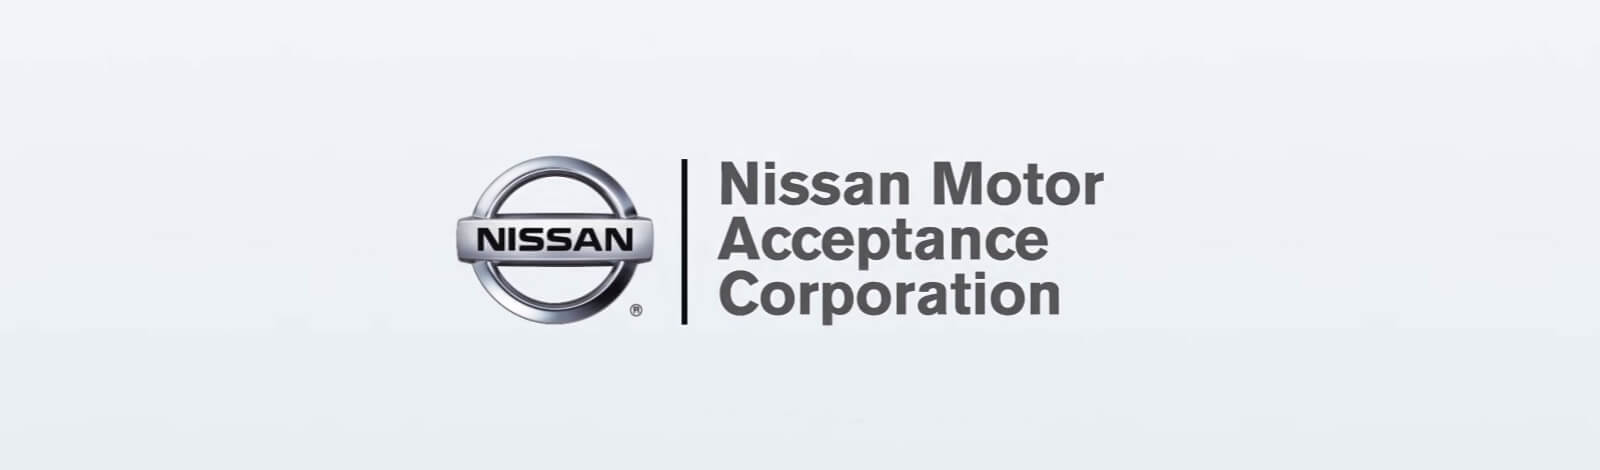 massive dealer compensation goautonews premium ForNissan Motor Acceptance Corporation Payoff